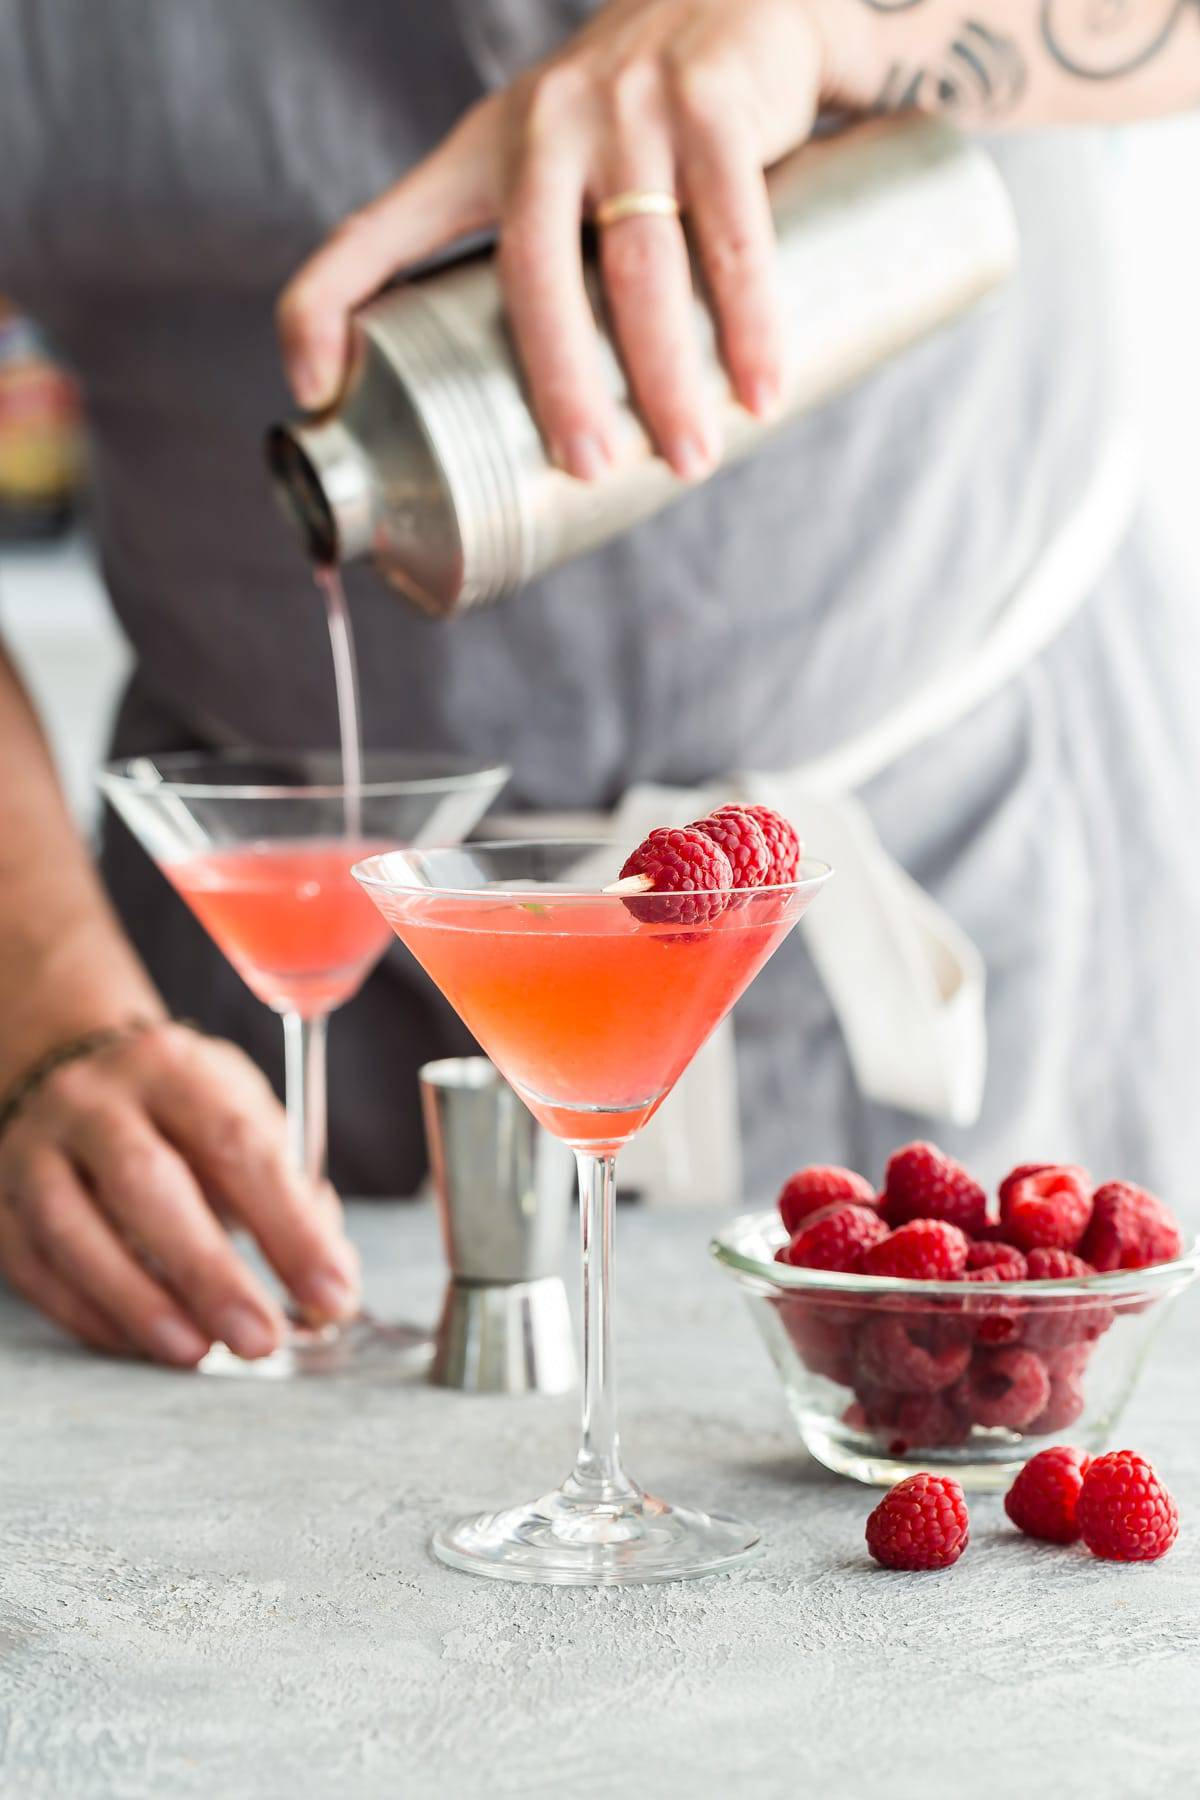 Pouring a raspberry martini into a glass